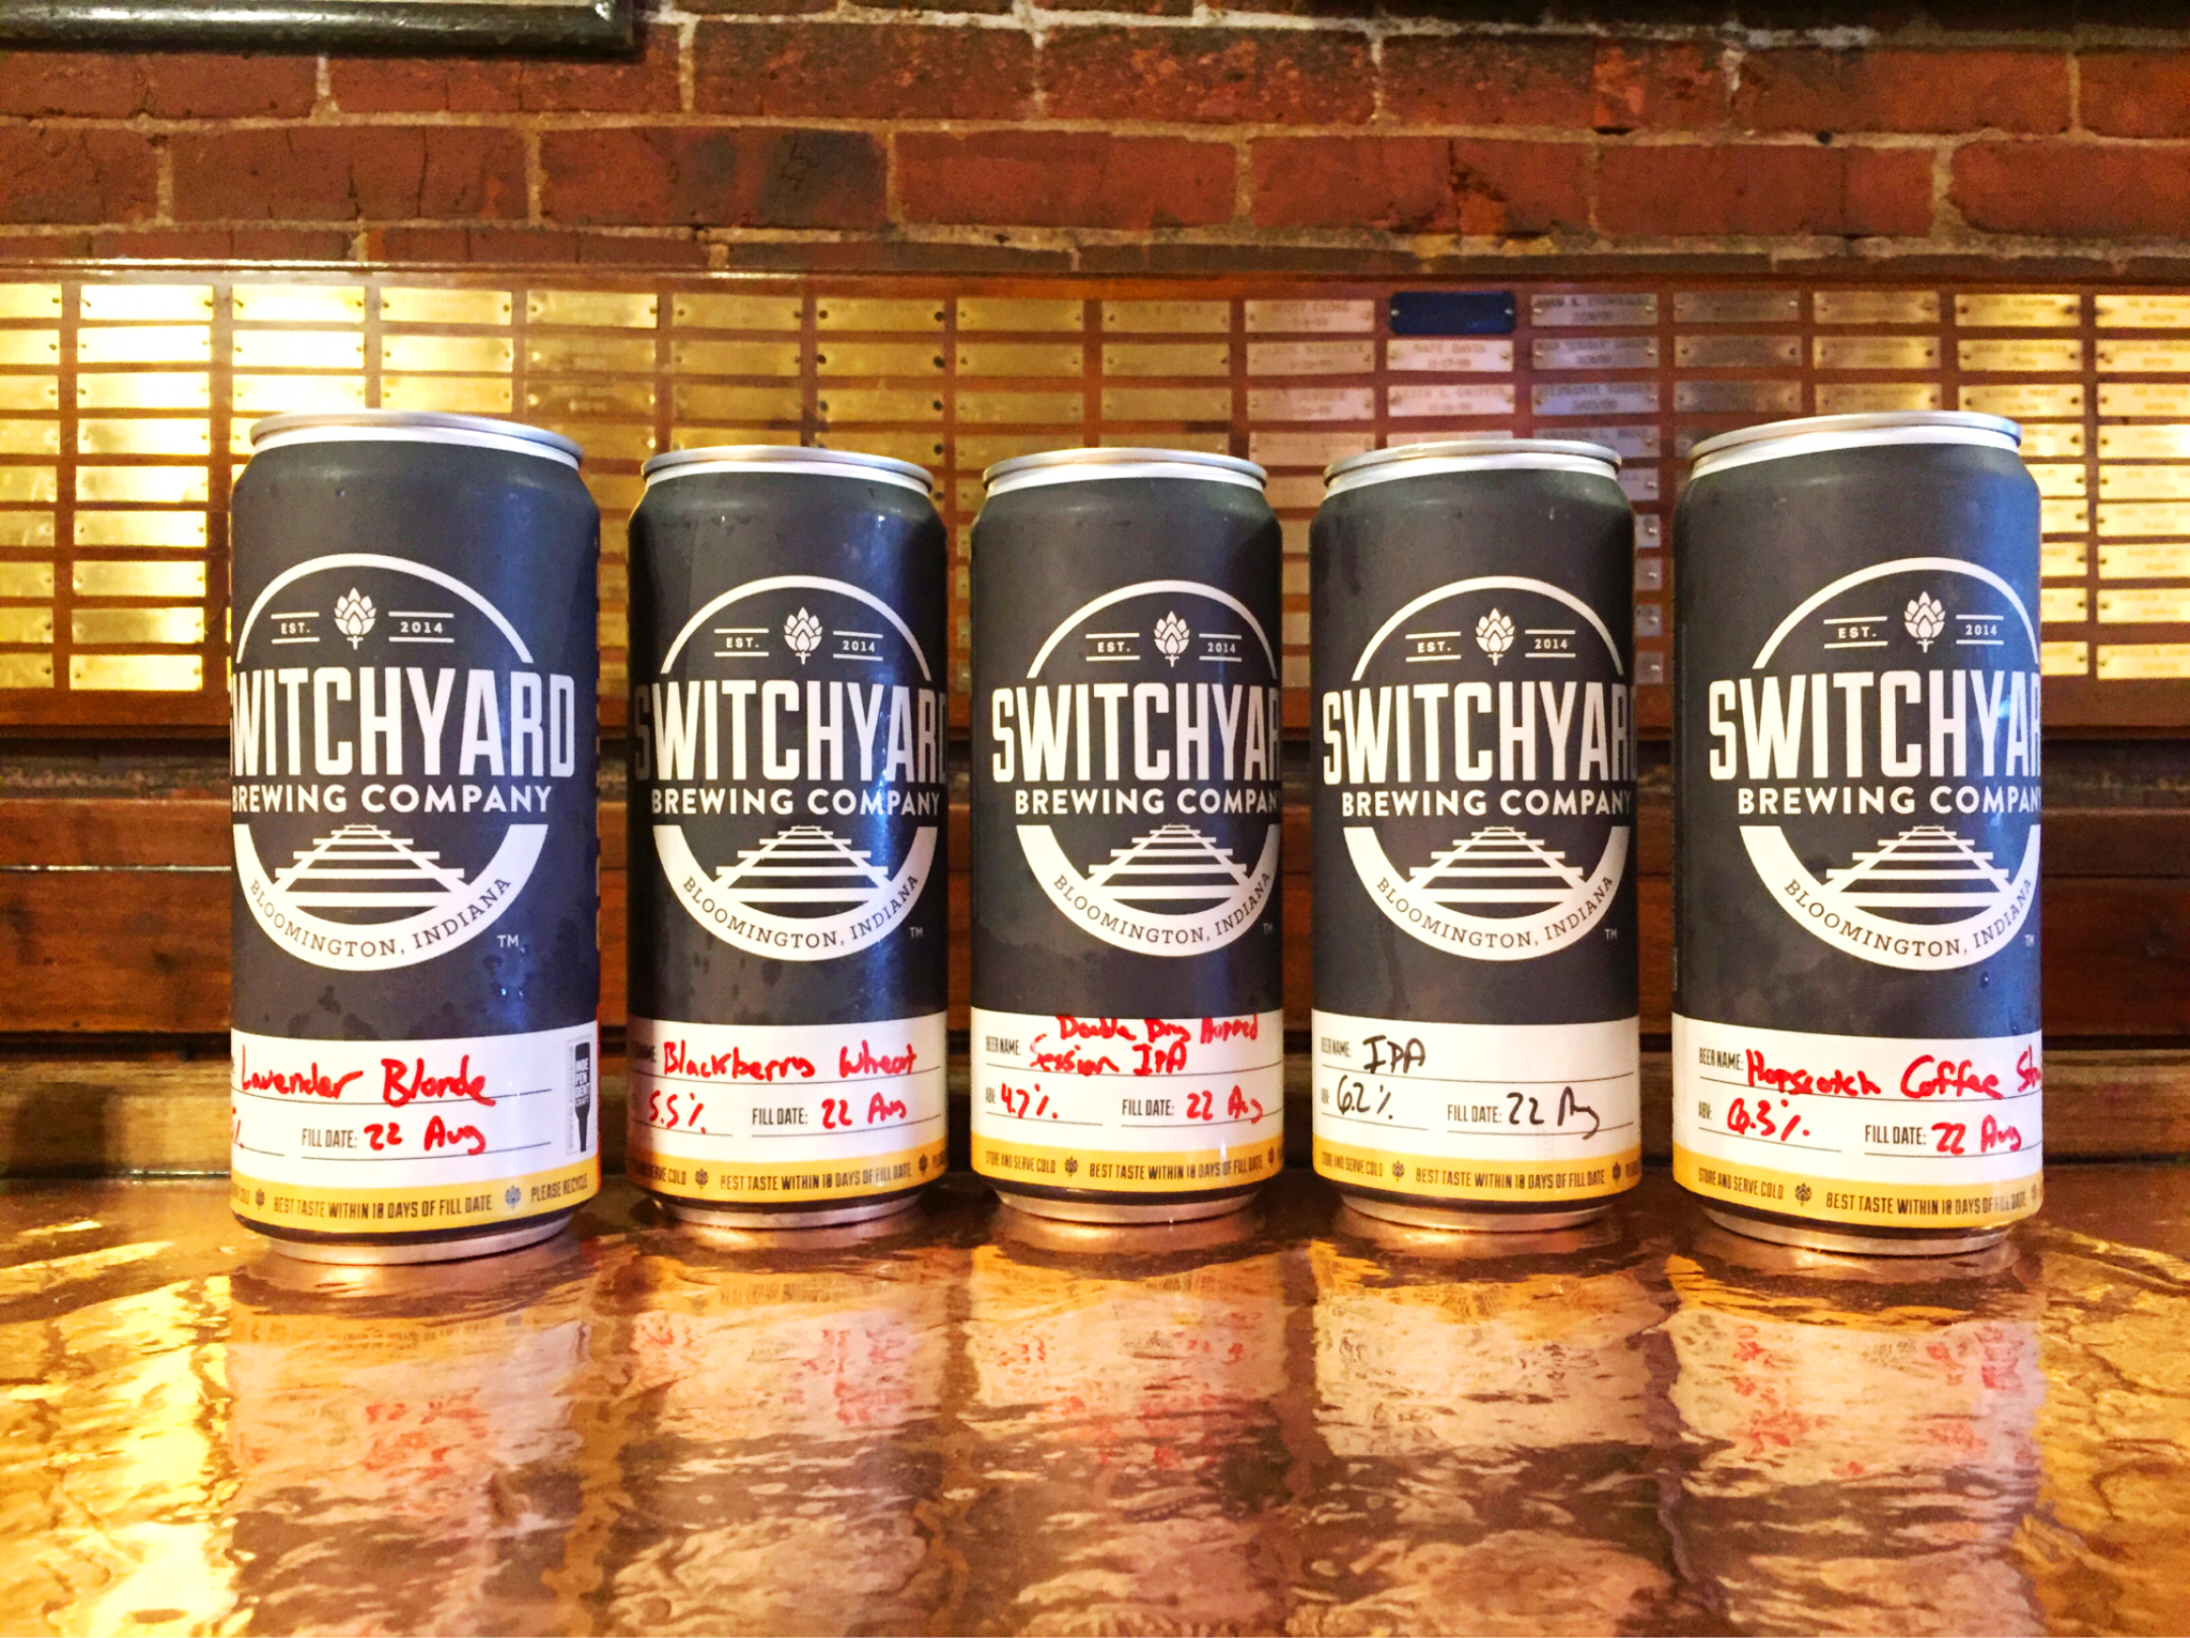 Calling all Switchyard fans! Pencil us onto your schedule and join us for our first tapping party at  Crazy Horse - Around the World in Eighty Beers in downtown Bloomington!  Meet the team, grab some free Switchyard swag, enjoy dinner and a few pints of your favorite Switchyard beer!  See you soon!